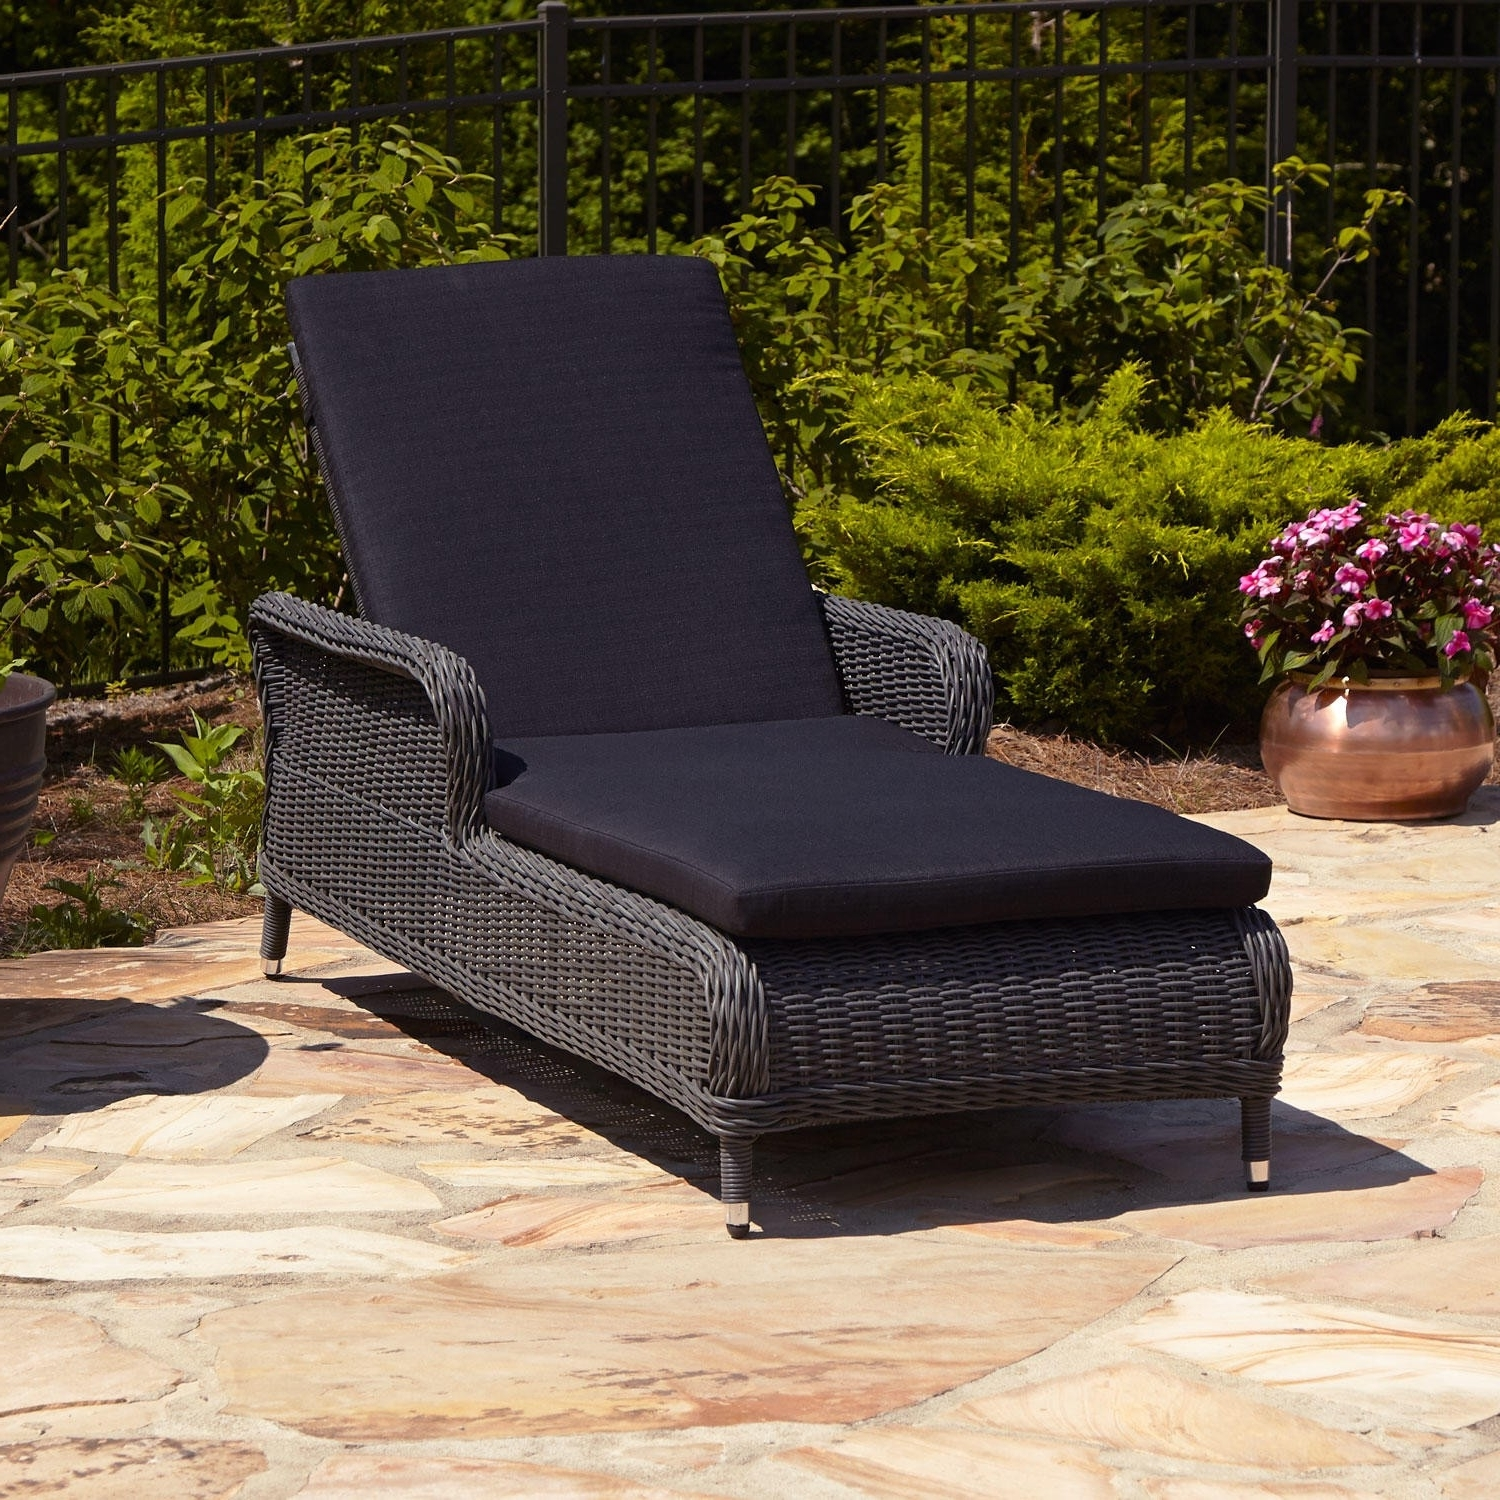 Most Popular Outdoor Wicker Chaise Lounges Within Remarkable Wicker Chaise Lounge Chair Gray Patio Furniture All (View 12 of 15)